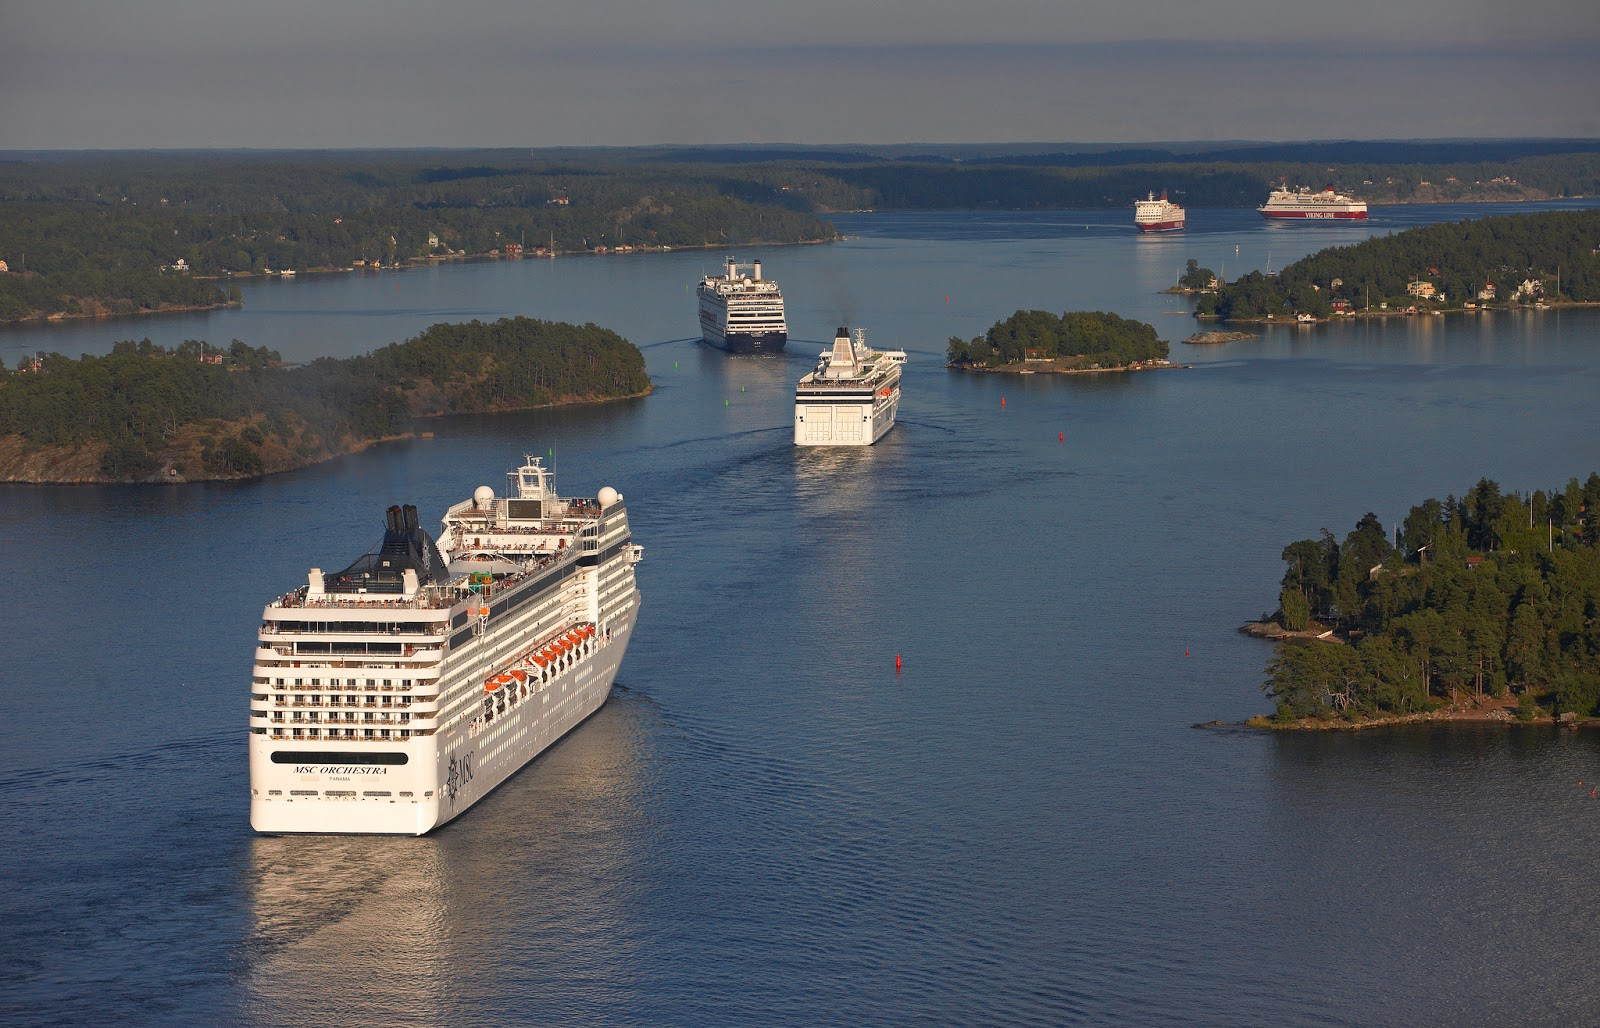 The Stockholm Tourist Stockholm Ports And Docks For Cruise Ships - Stockholm tours from cruise ships